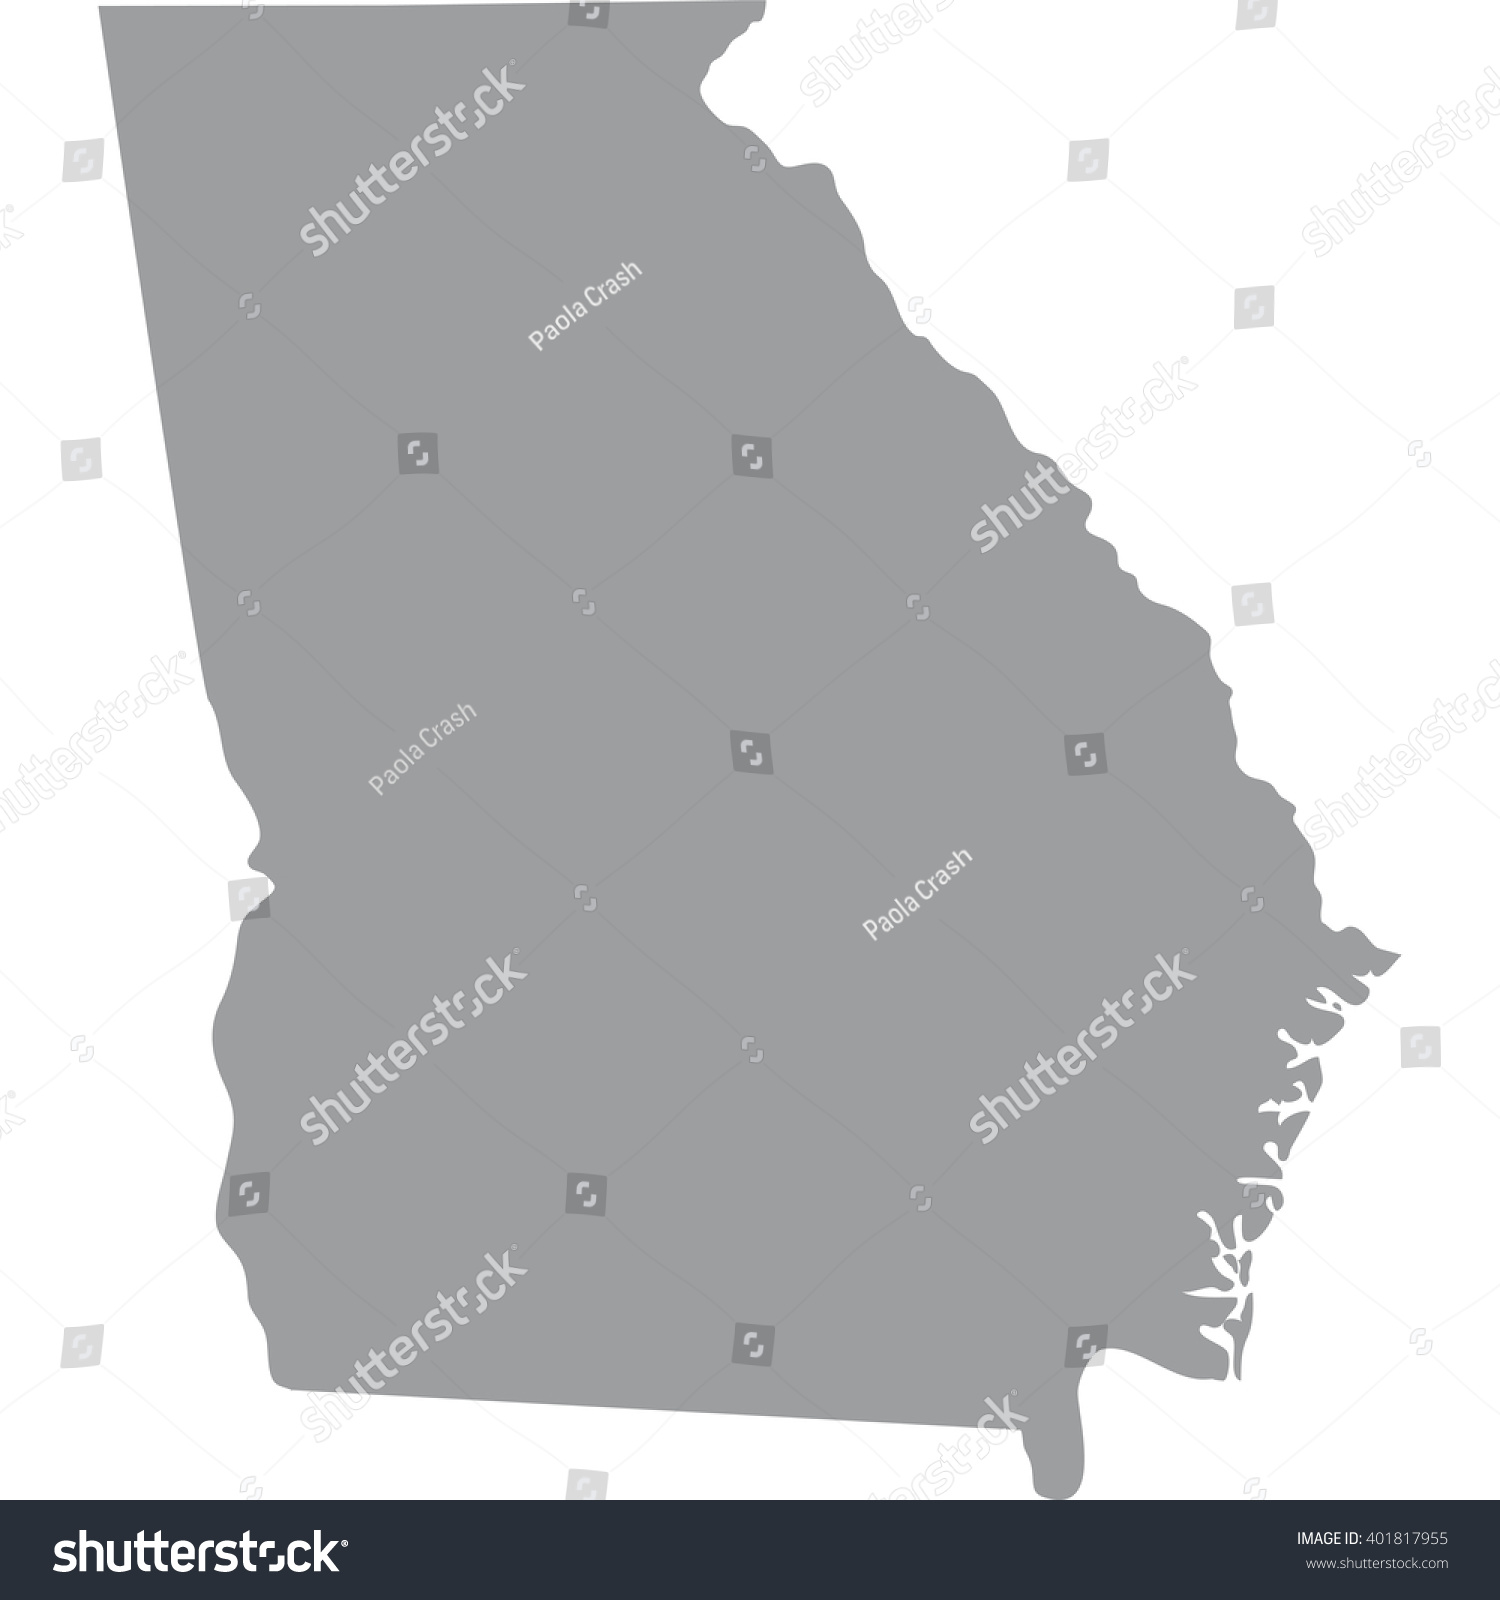 Georgia Us State Vector Map Quebec City Map Rock Of Gibraltar Map - Georgia us map